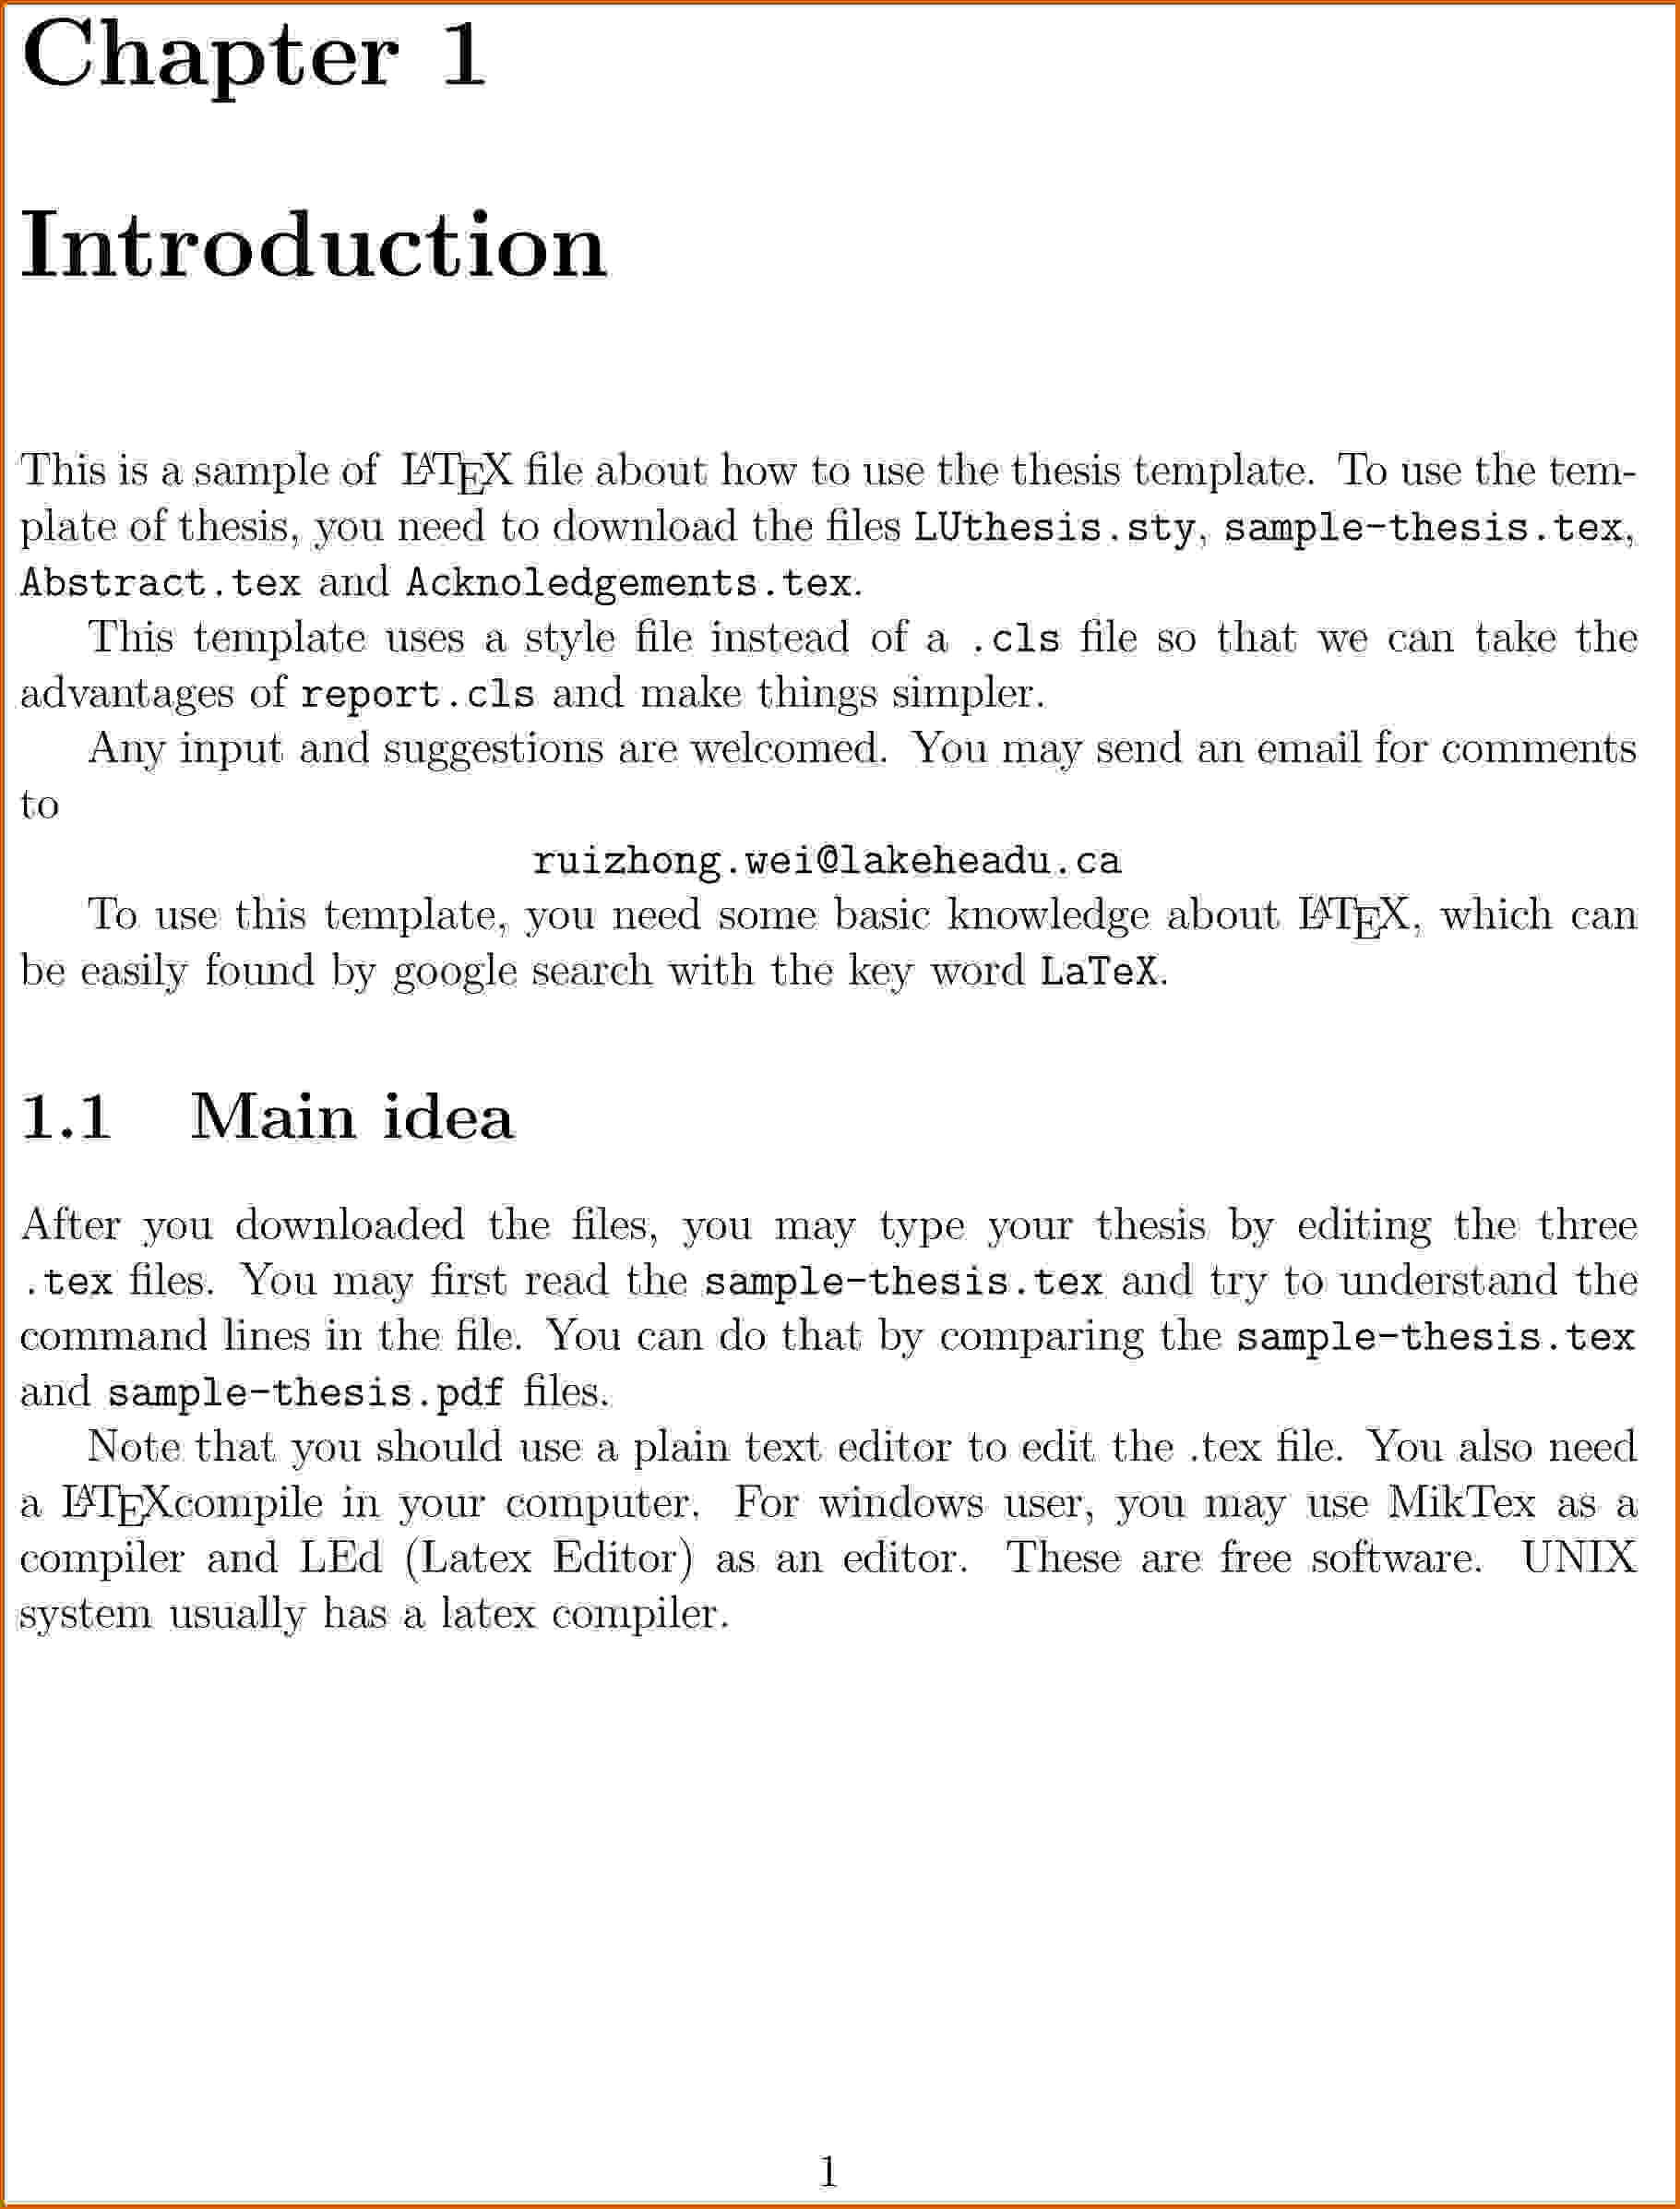 011 Essay Introduction Example Best Ideas Of An Marvelous At Within Introduction Template For Report